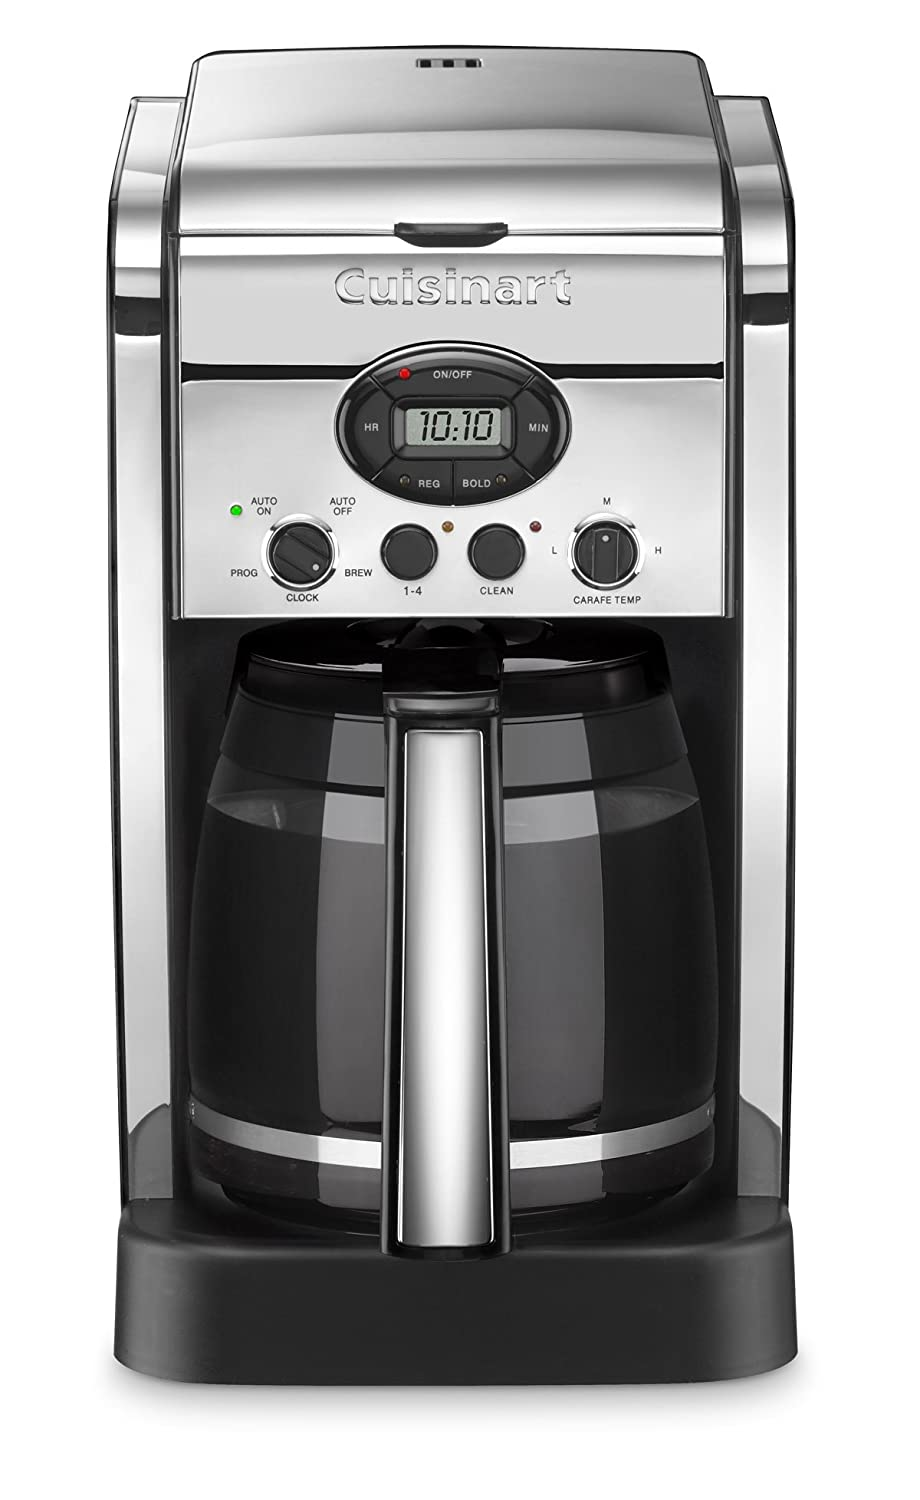 How Do You Program Cuisinart Coffee Maker - Free Software and Shareware - flicksletitbit